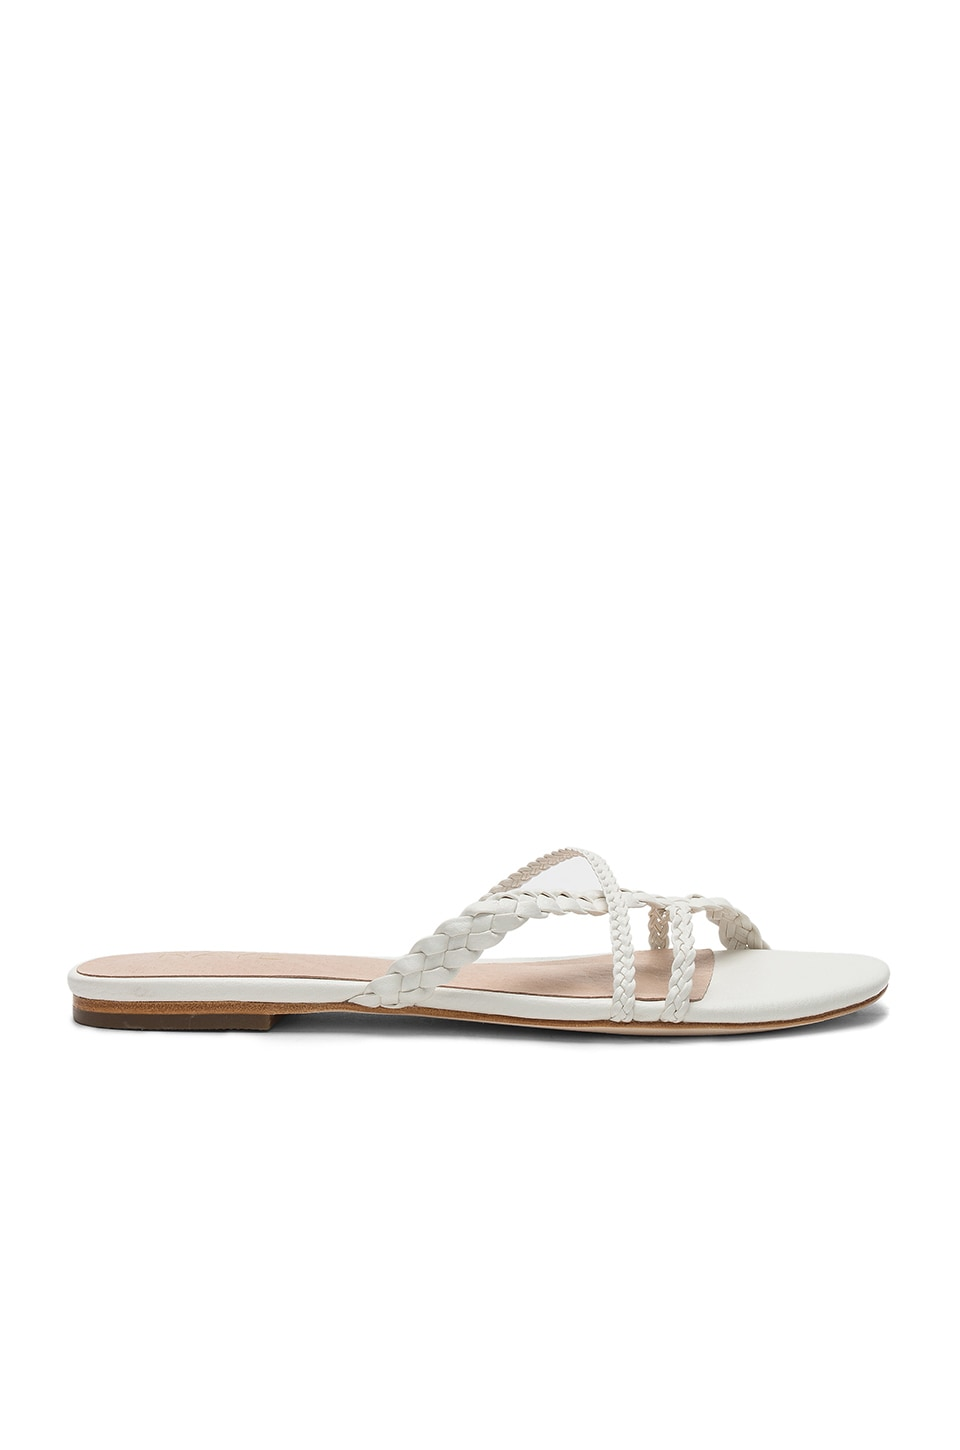 RAYE Emily Sandal in White